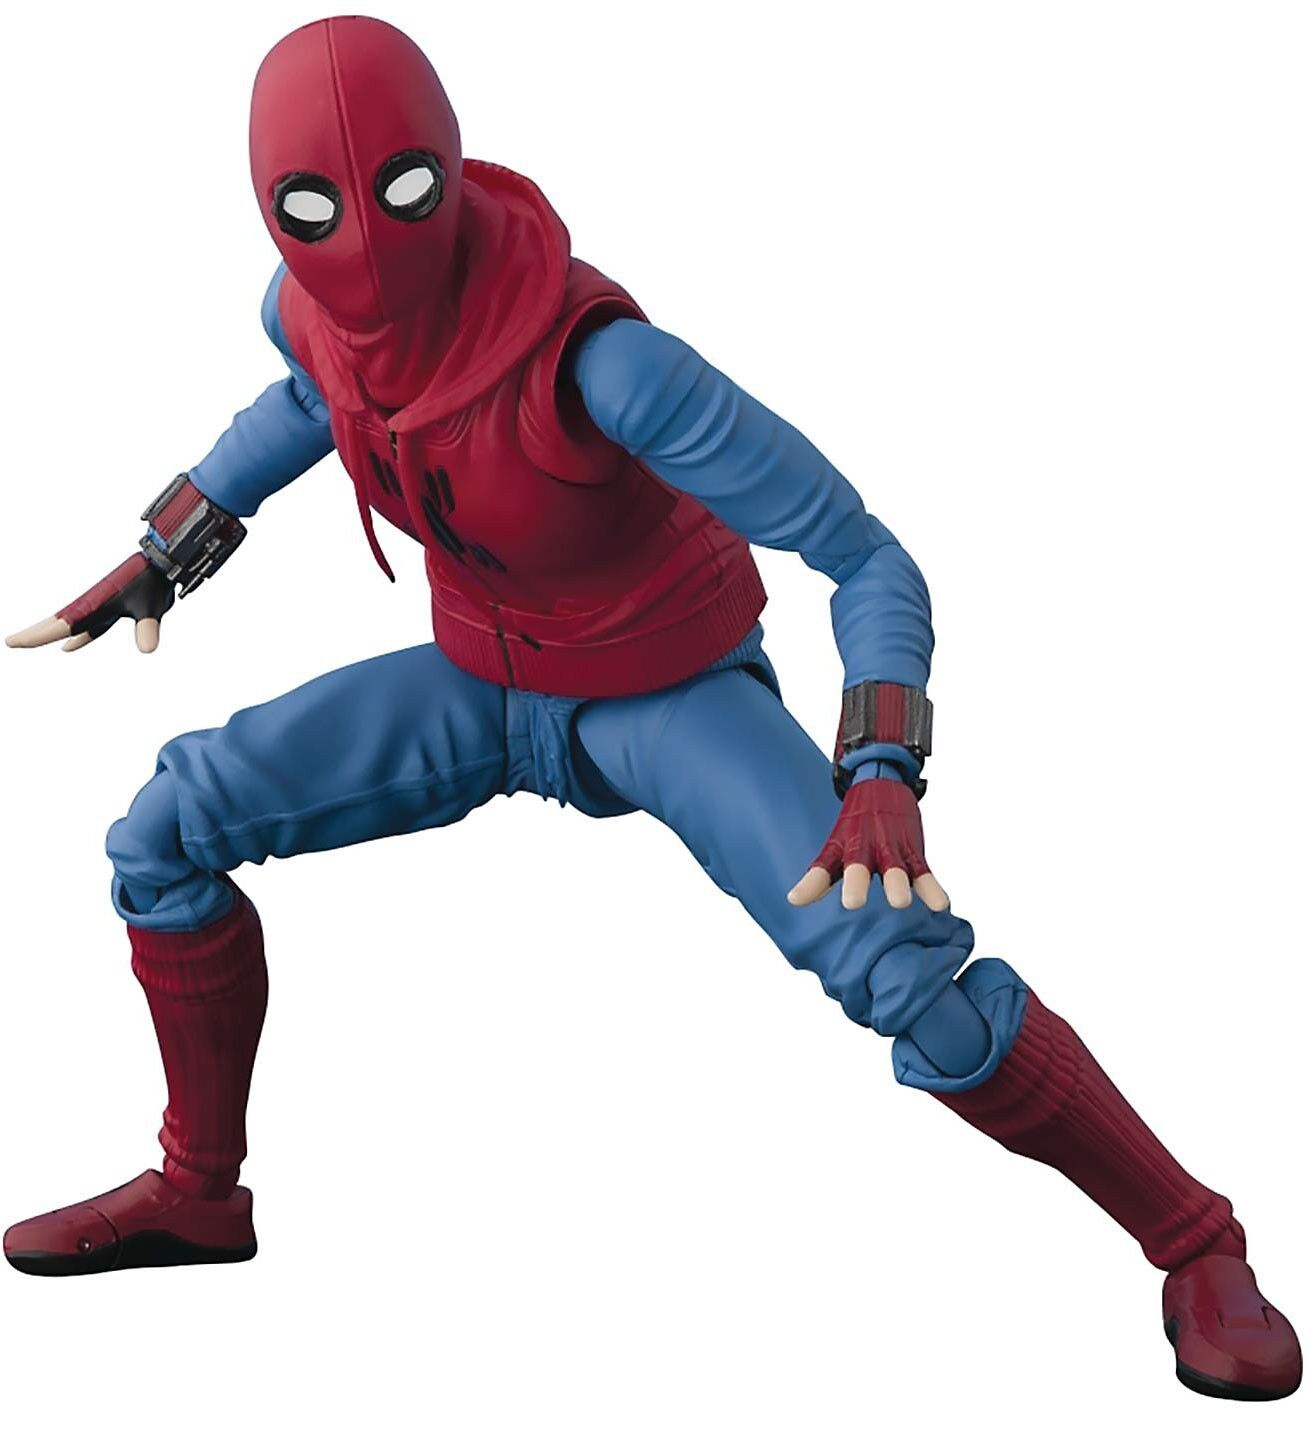 Spider-Man Homecoming S.H. Figuarts Spider-Man Homemade Costume Action Figure